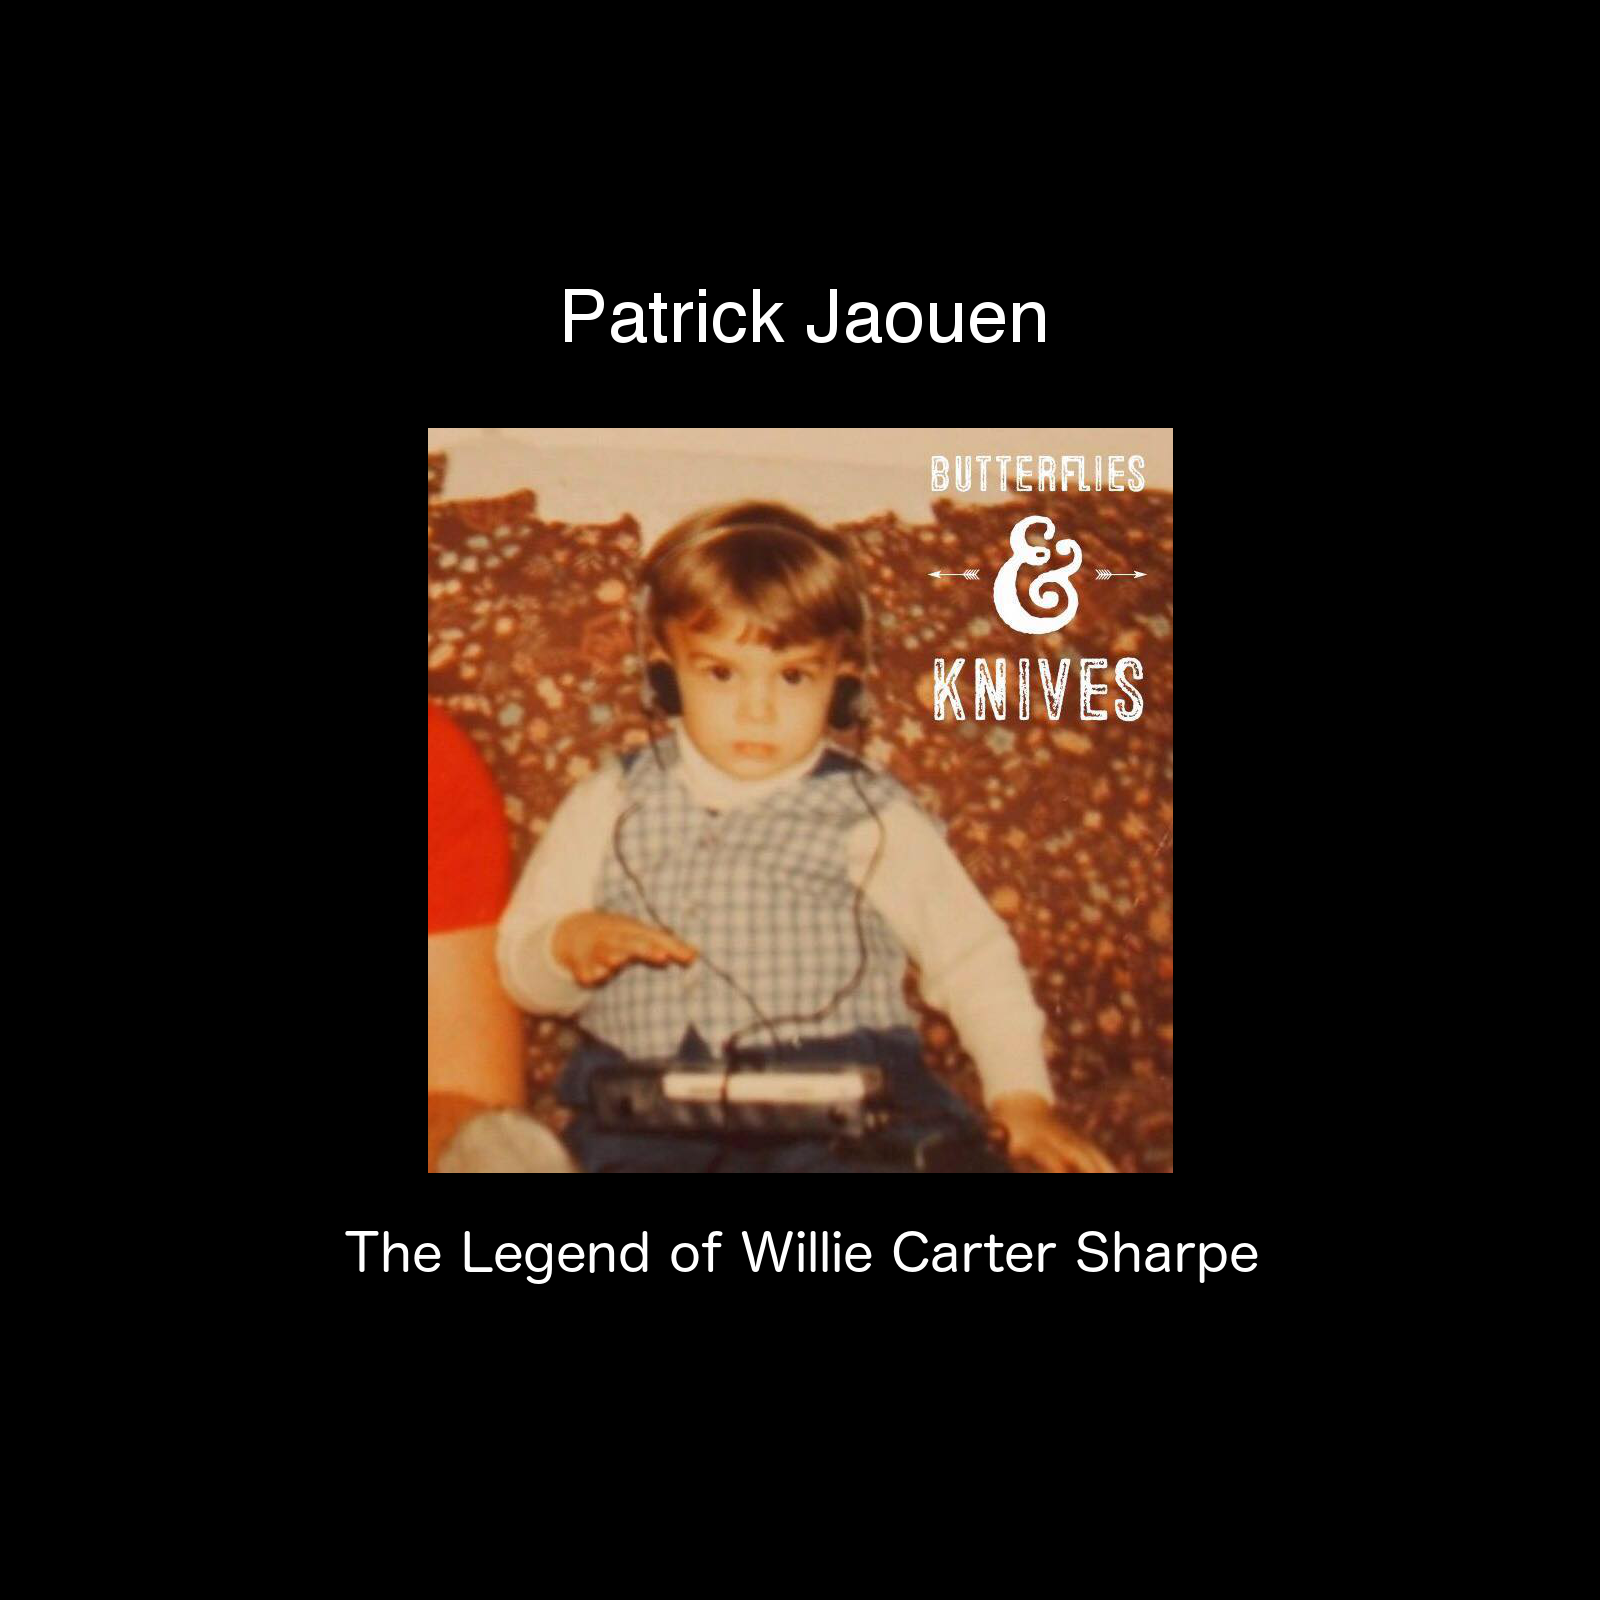 The Legend of Willie Carter Sharpe